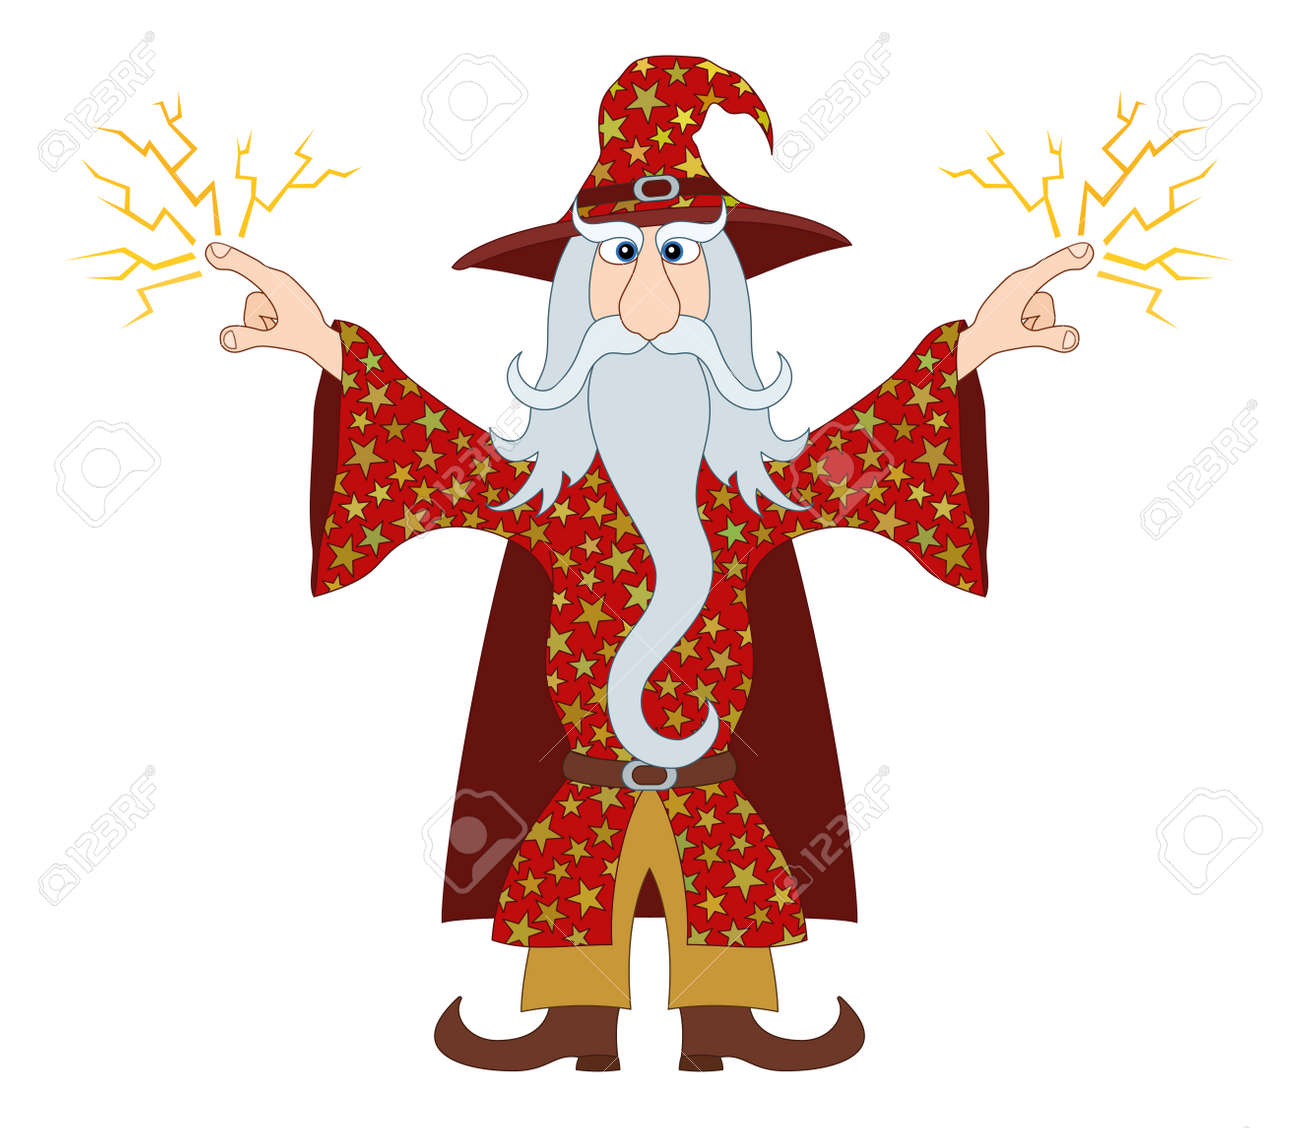 Abracadabra Stock Photos & Pictures. Royalty Free Abracadabra ...